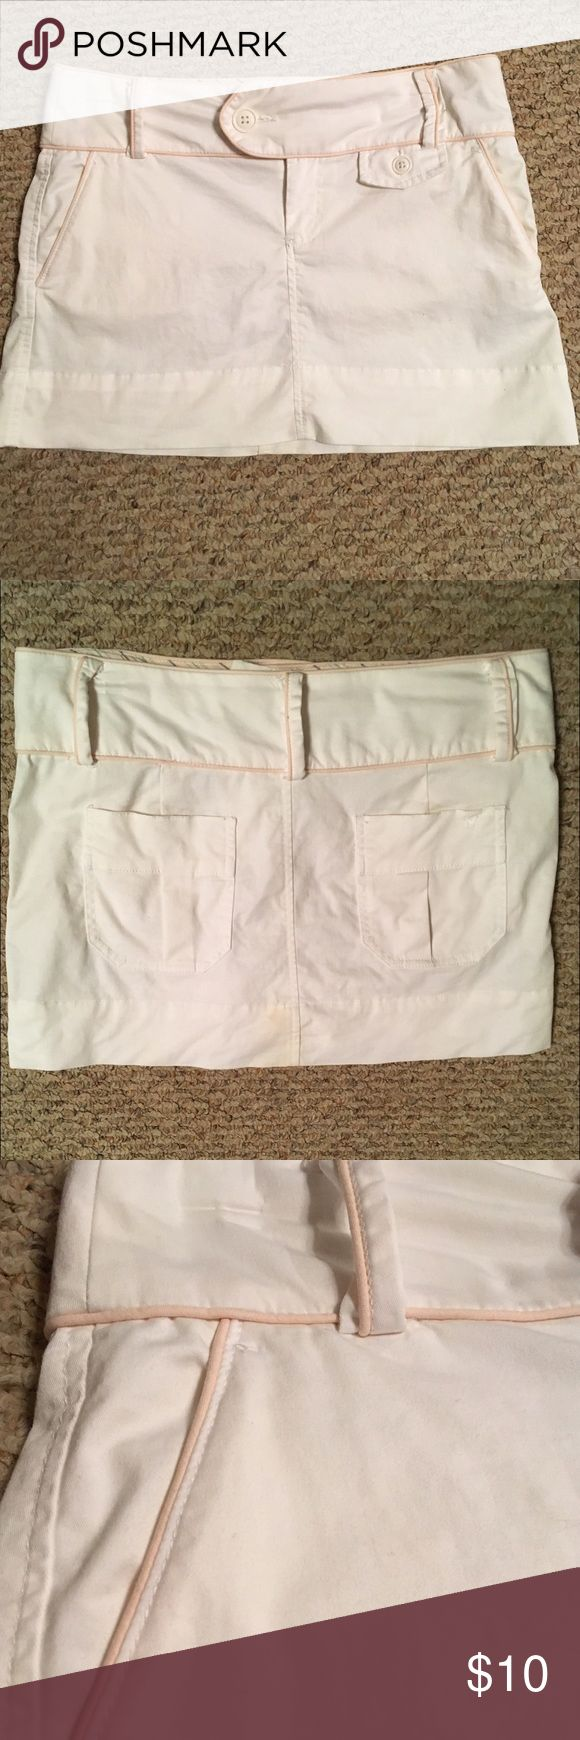 """AMERICAN EAGLE OUTFITTERS SKIRT W PALE PINK PIPING 🌺....GET READY FOR SPRING...ADORABLE BRIGHT WHITE AMERICAN EAGLE OUTFITTERS SKIRT ACCENTED WITH PALE PINK PIPING.  2 buttons(1 outside and 1 inside for security) and 1 zipper, all in working condition.  1 decorative(fake) under the left beltloop.  4 working pockets:  2 front side pockets and 2 back pockets.  5 belt loops:  2 in the front and 3 in the back.  SUPER CUTE!  Details:  machine wash cold, tumble dry low.  Measurements:  waist 33""""…"""